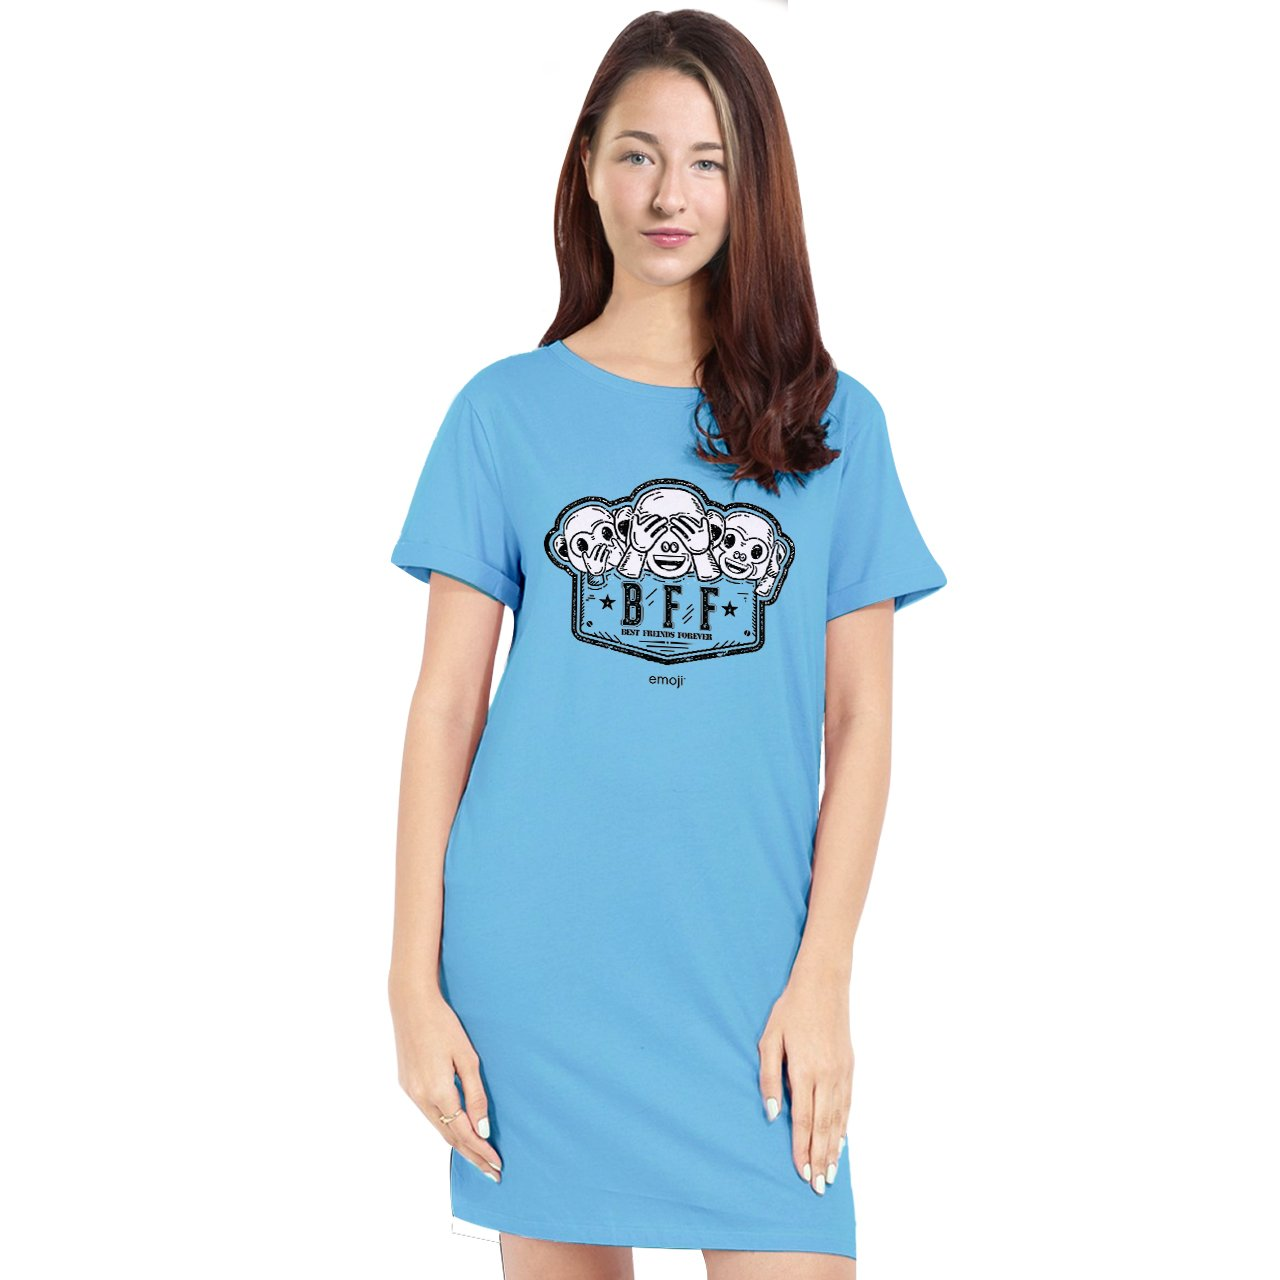 Official Licensed emoji Printed T-Shirt Dress for Women - BFF